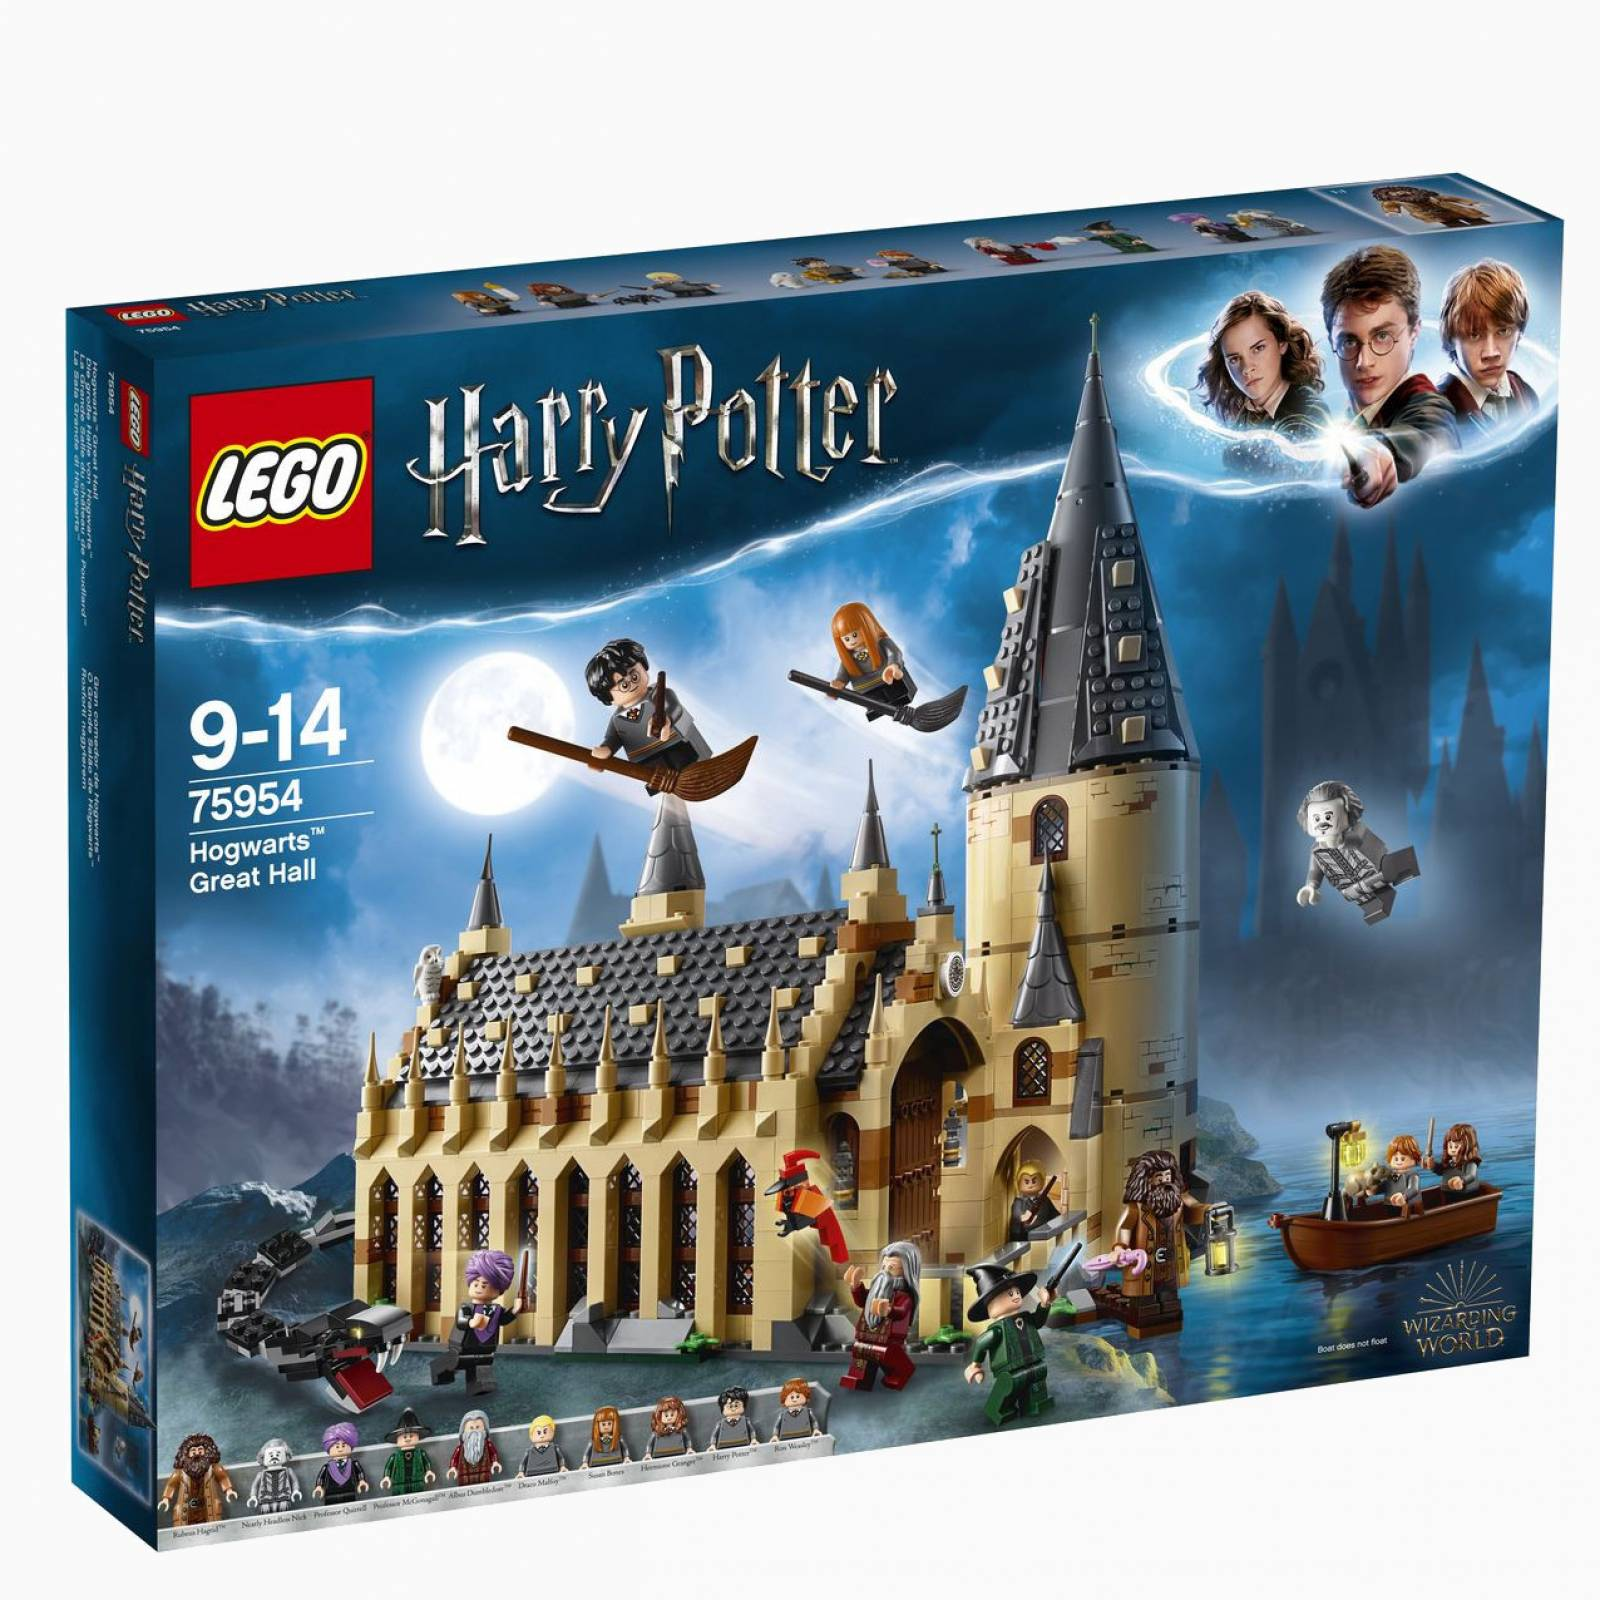 LEGO Harry Potter Hogwarts Great Hall 75954 thumbnails